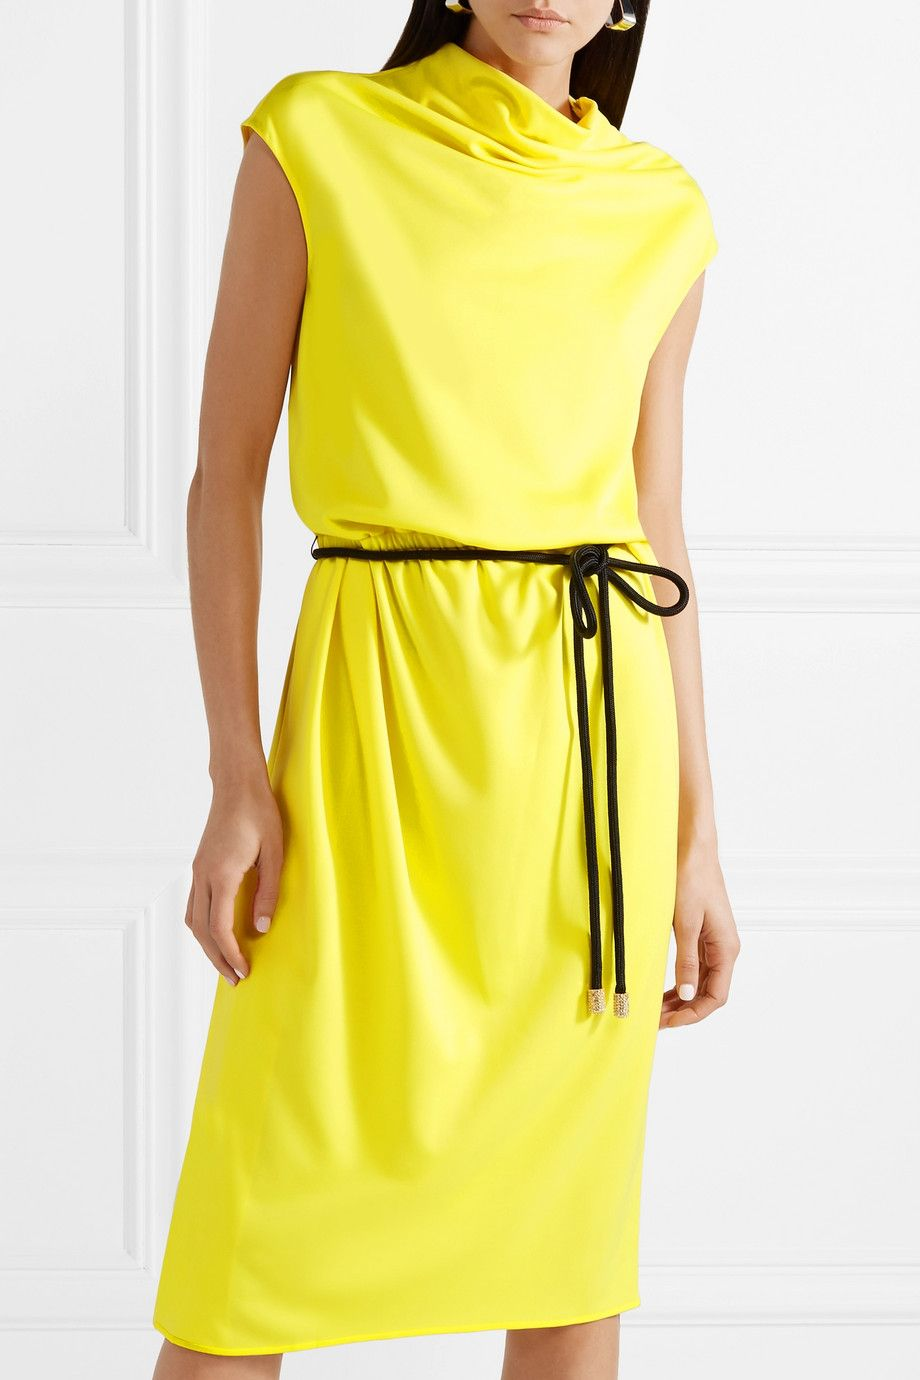 Belted Draped Jersey Midi Dress - Yellow Marc Jacobs uLaIPyU